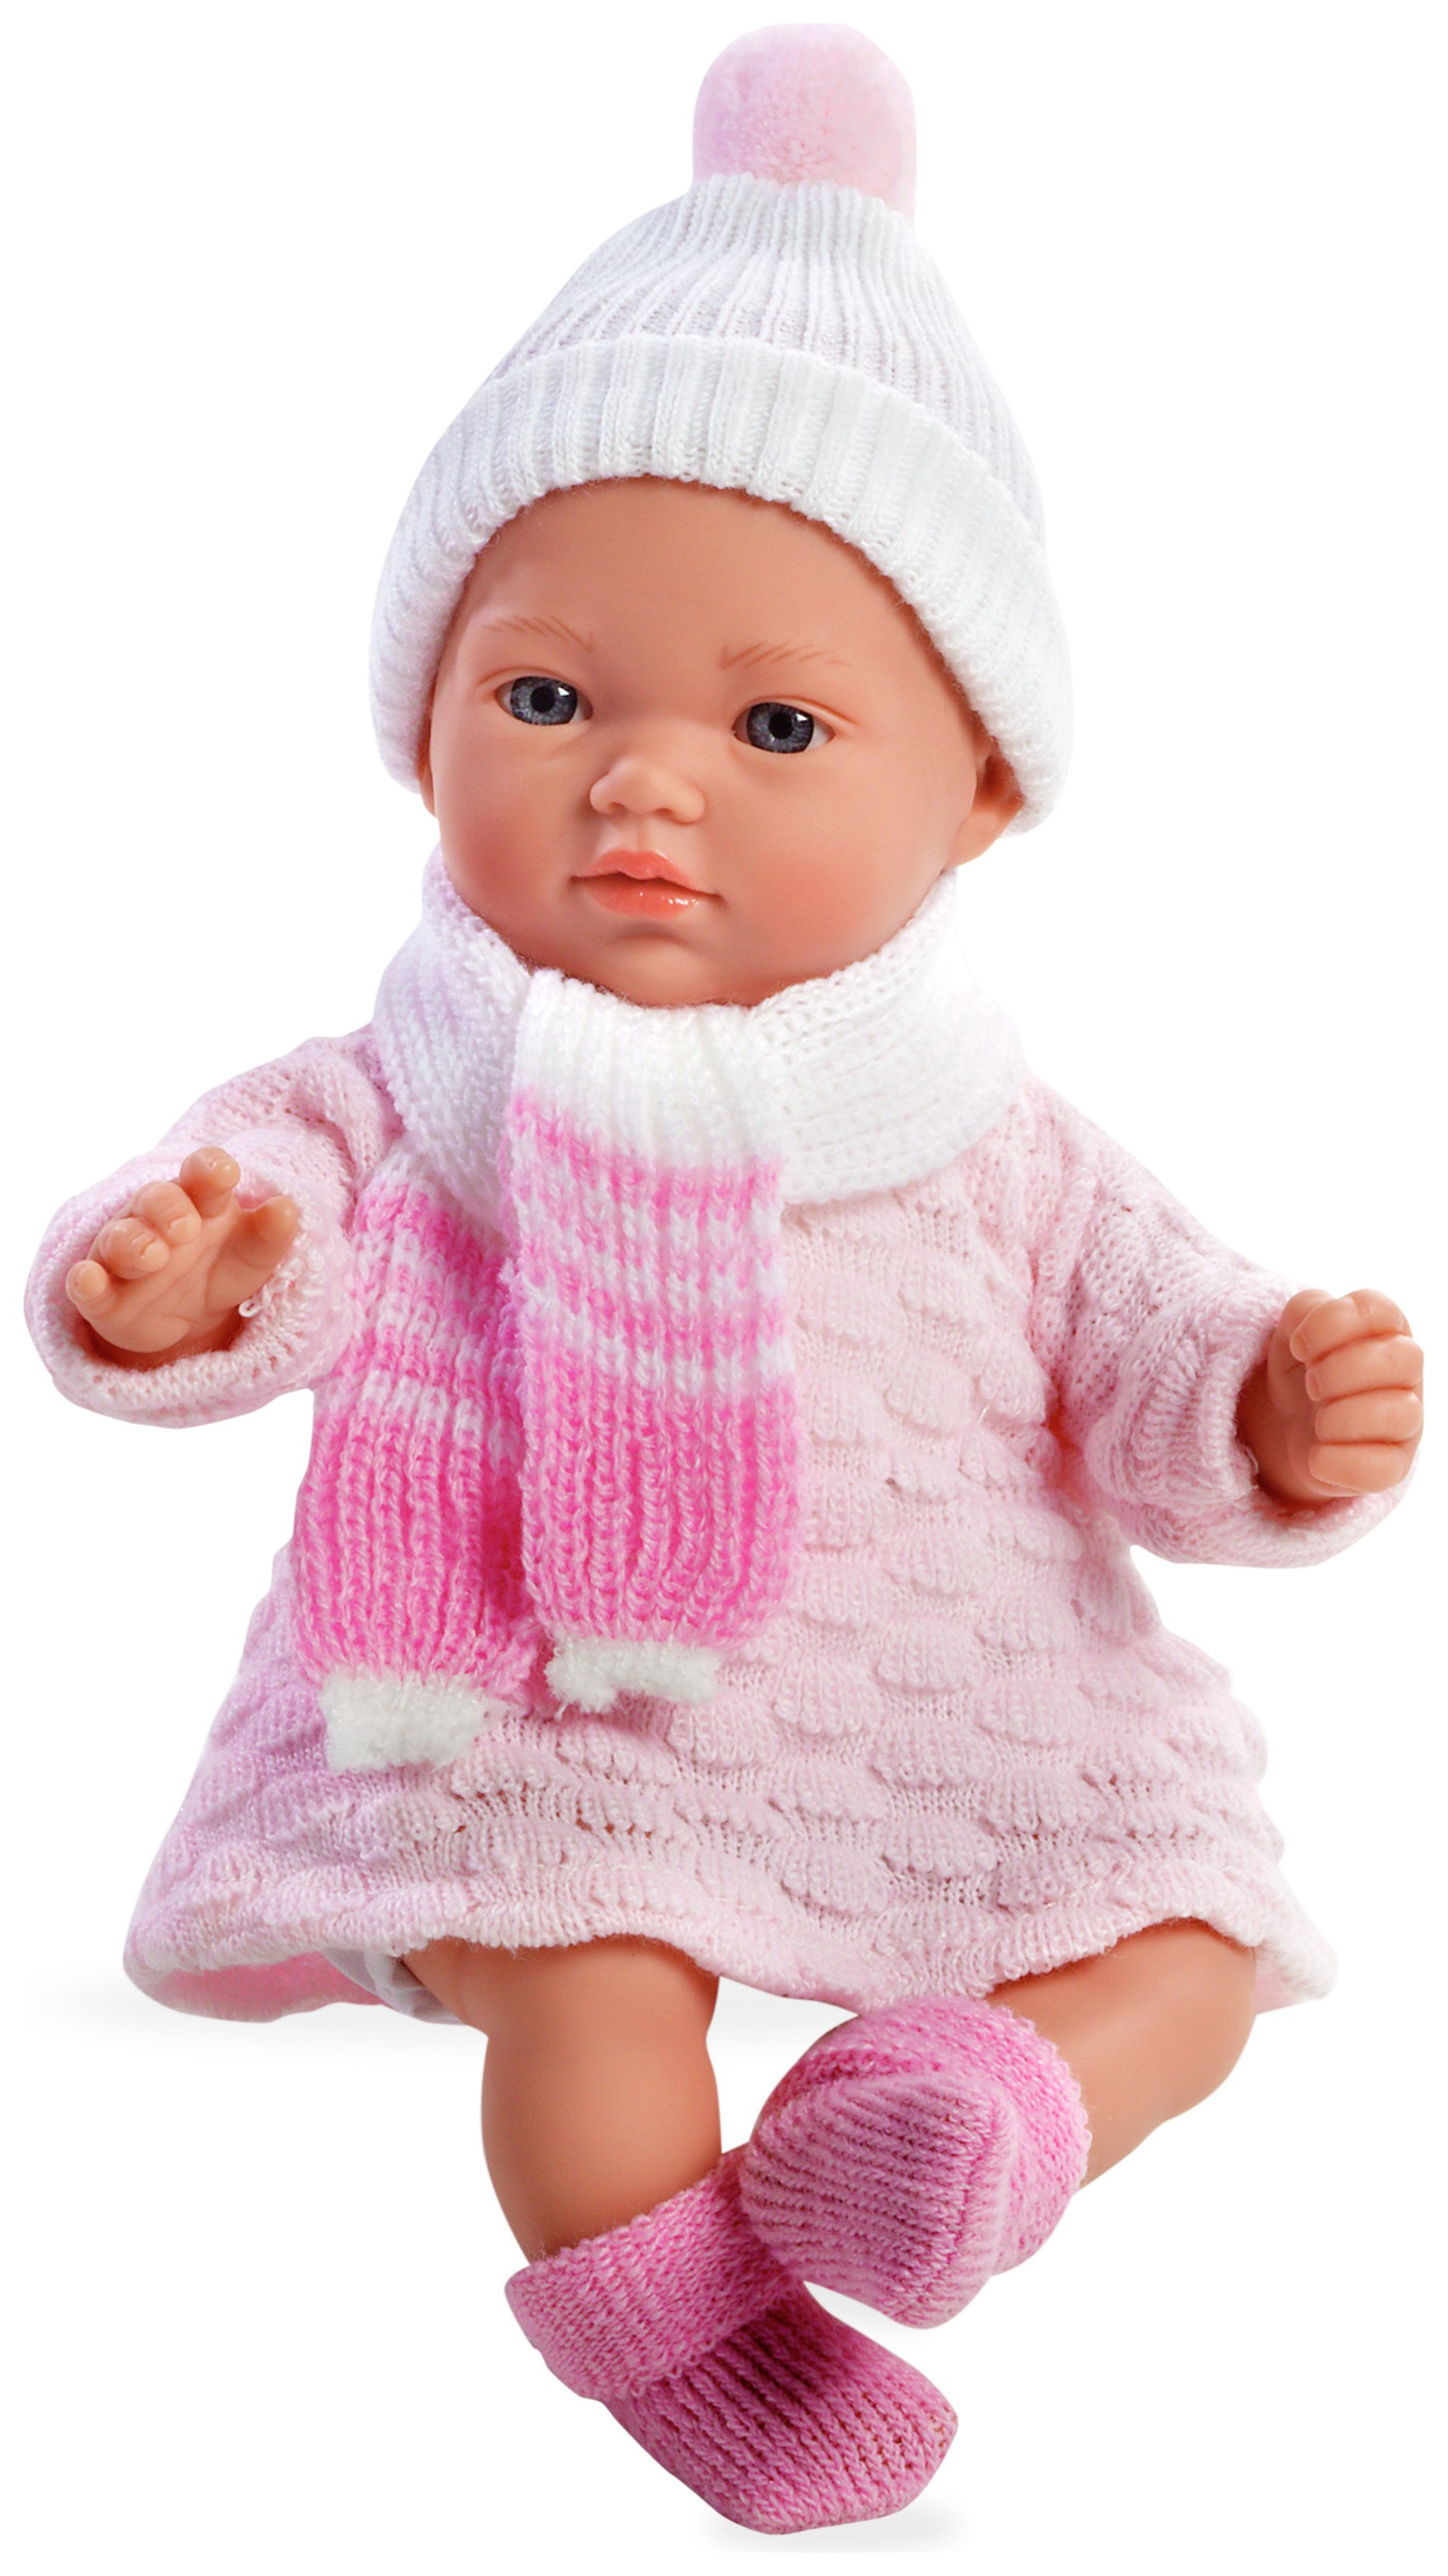 Image of Arias Elegance Andrea Rosa Doll.